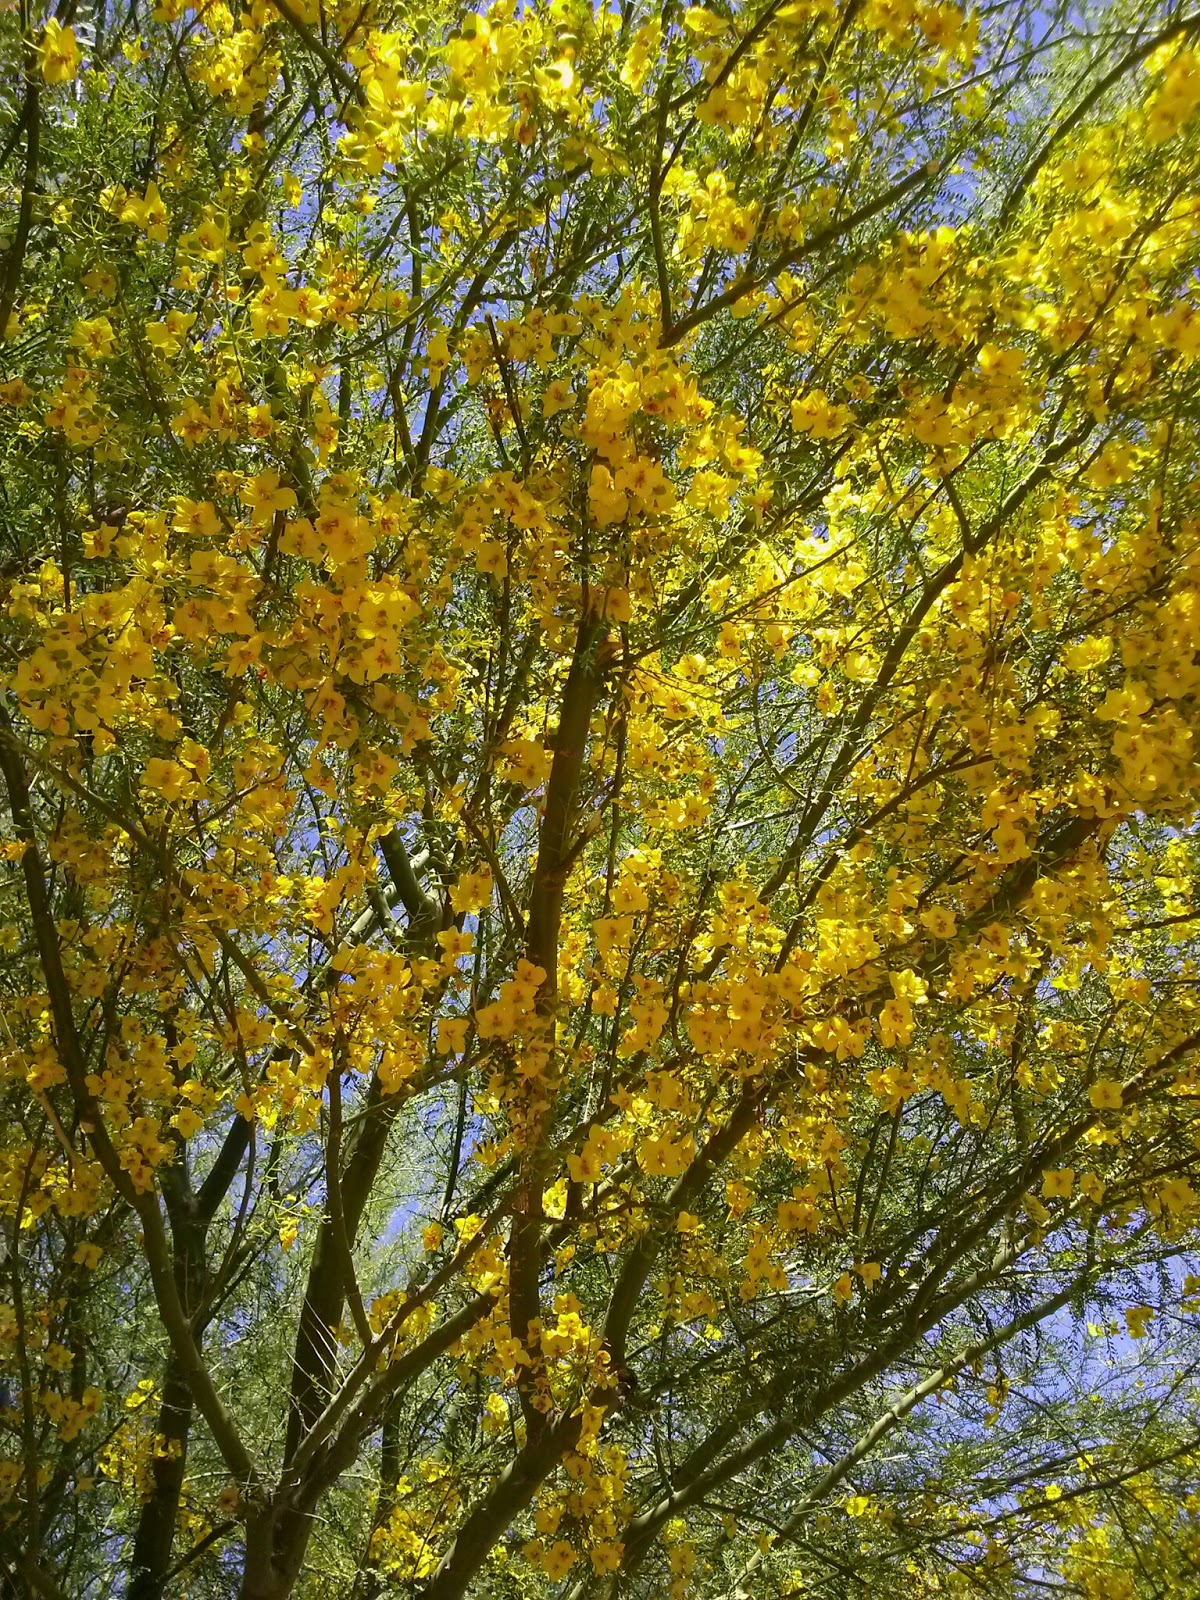 desert tree, native plant, palo verde, parkinsonia, low desert